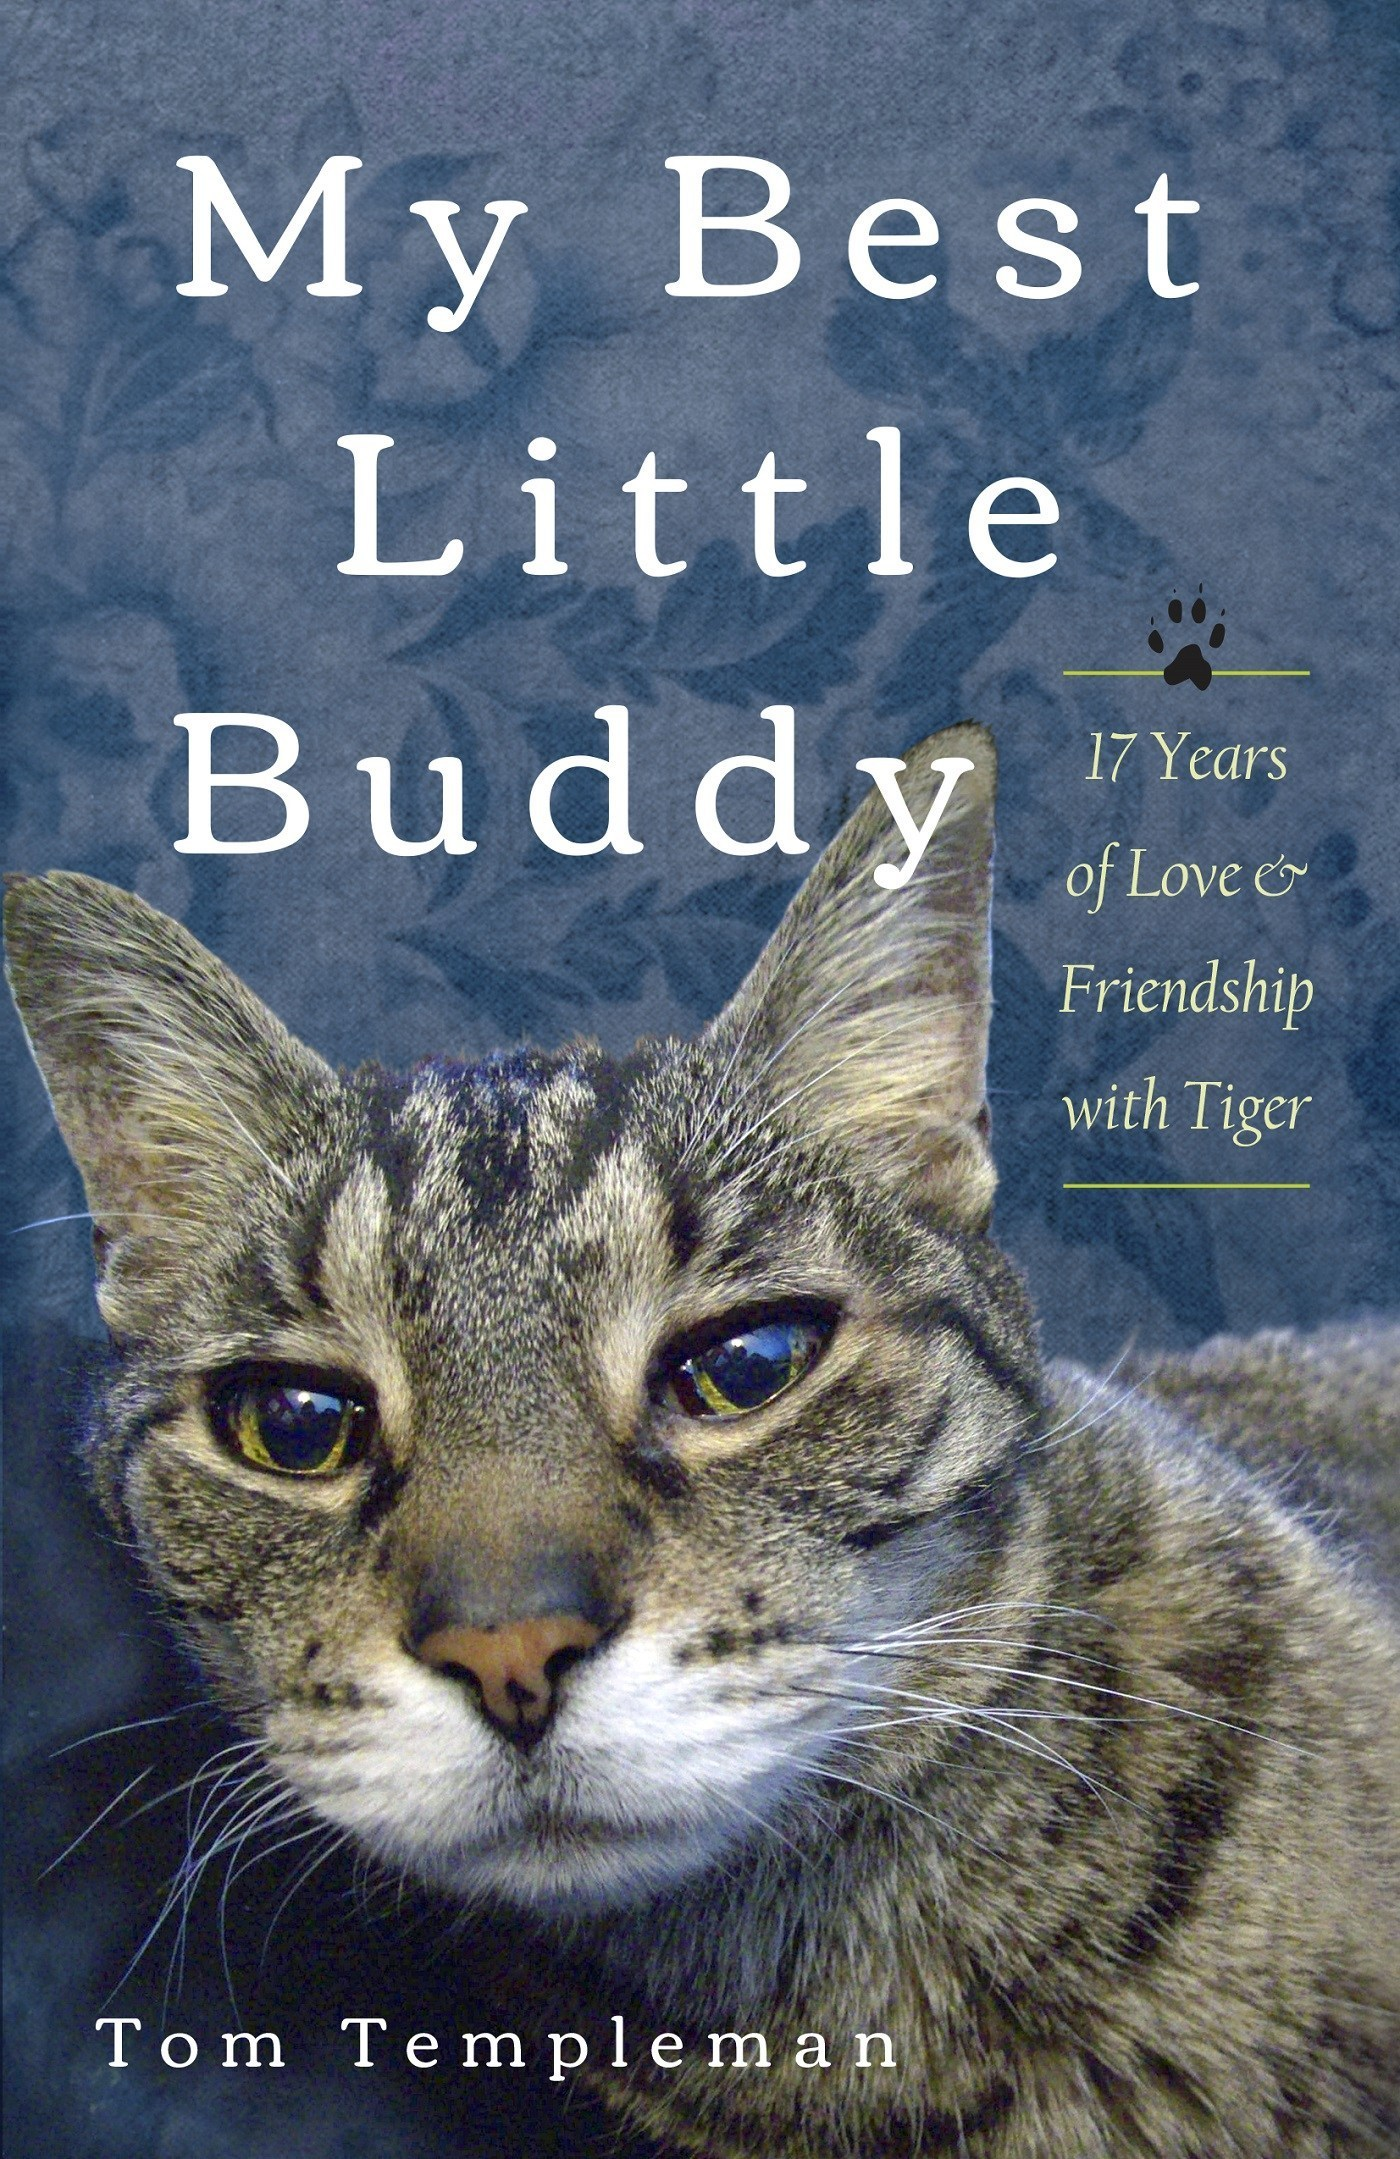 Tom Templeman, Author of 'My Best Little Buddy', Extends Book Signings to Online Participants; Schedule Announced